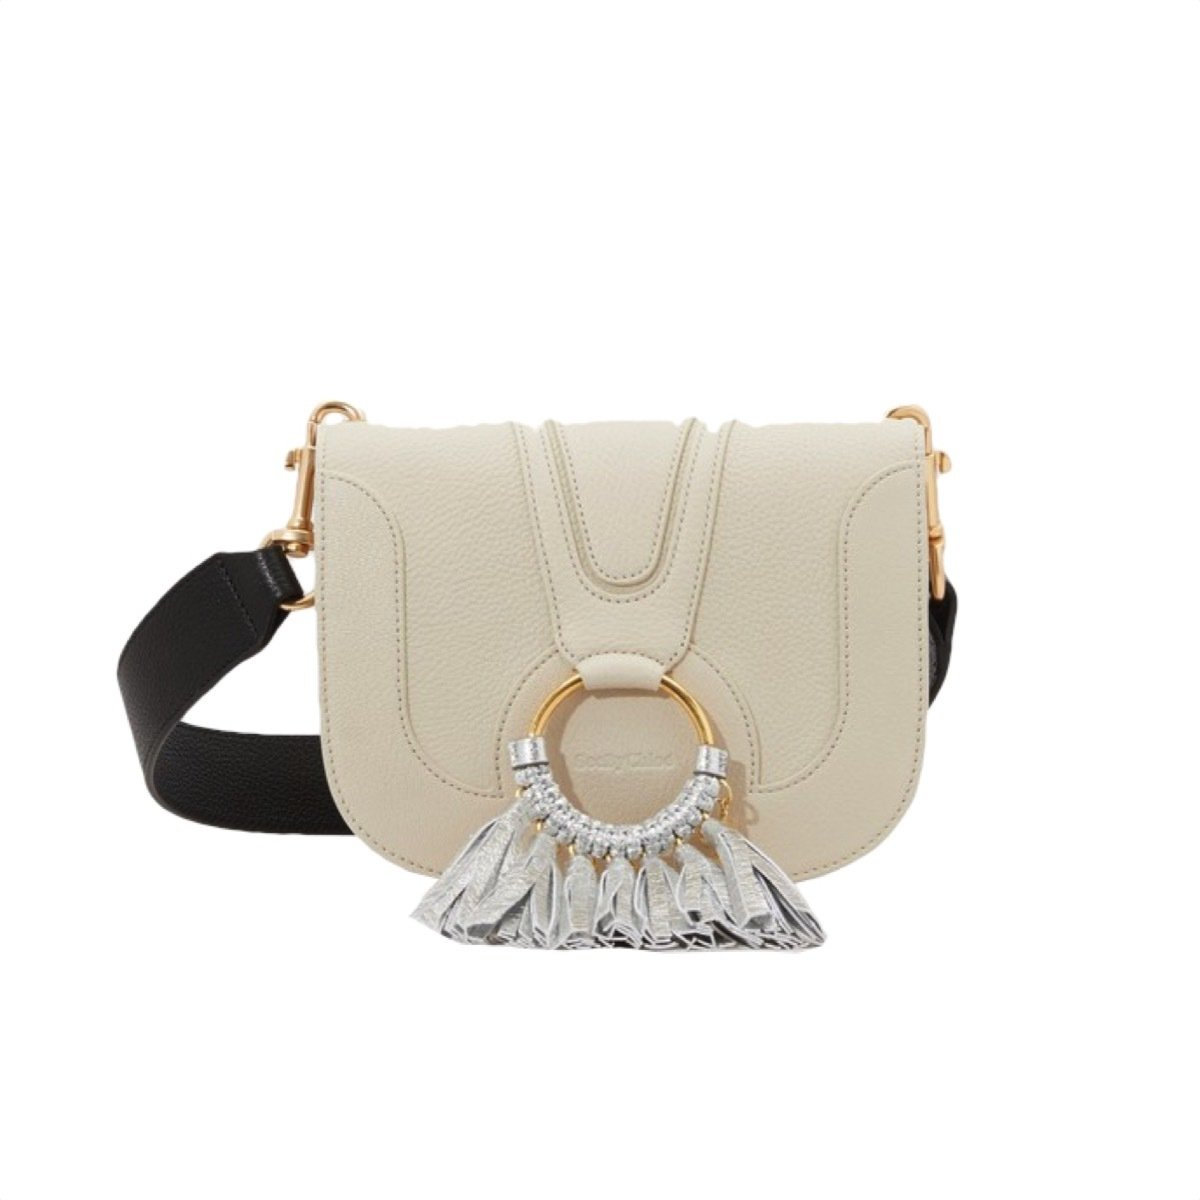 SEE BY CHLOÉ - Hana Small Crossbody Bag con frange - Cement Beige